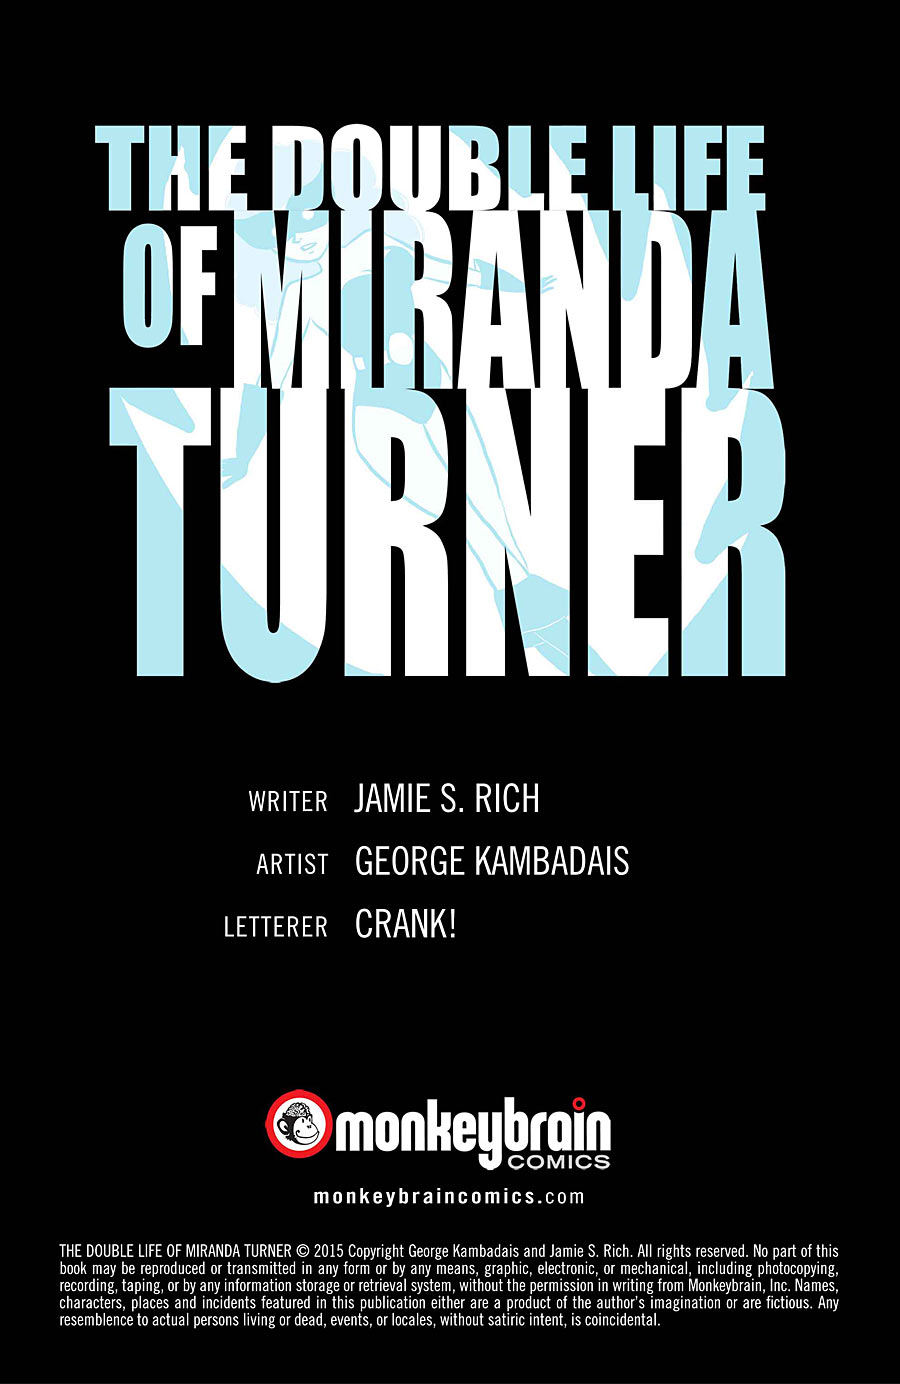 The-Double-Life-of-Miranda-Turner-06-2-ebfd2.jpg